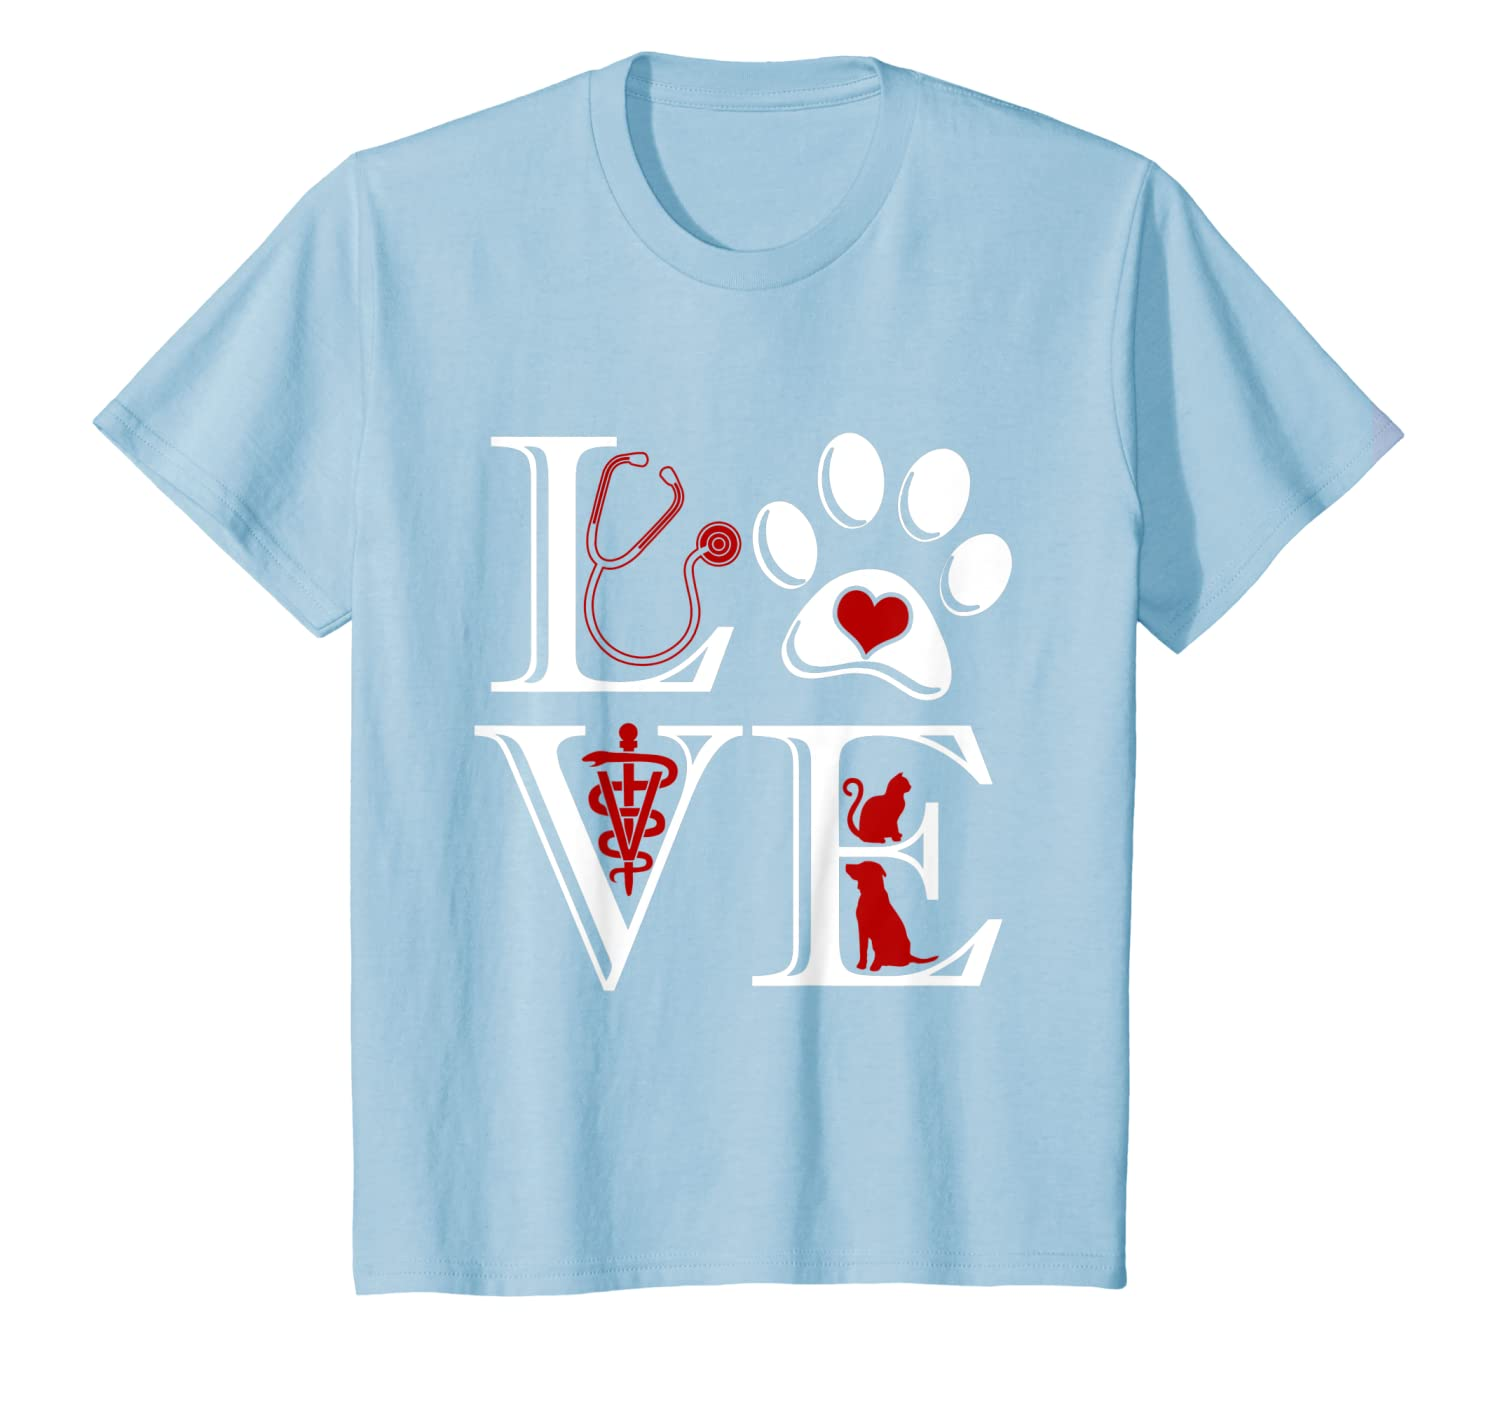 Veterinary Medicine Is LOVE Funny Cute Graphic T Shirt